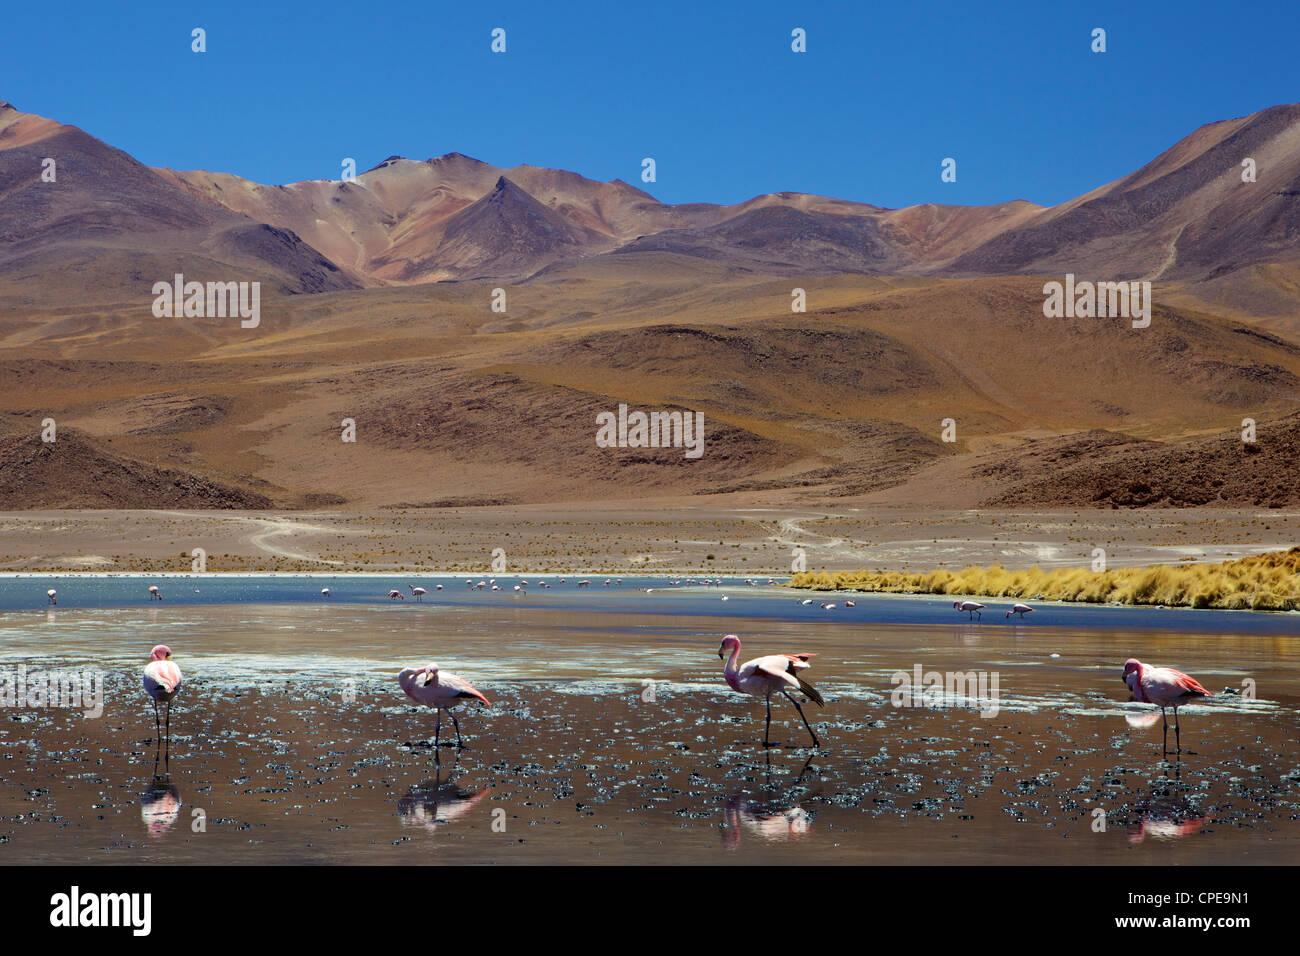 Flamingos drinking in a lagoon, South West Bolivia, South America - Stock Image